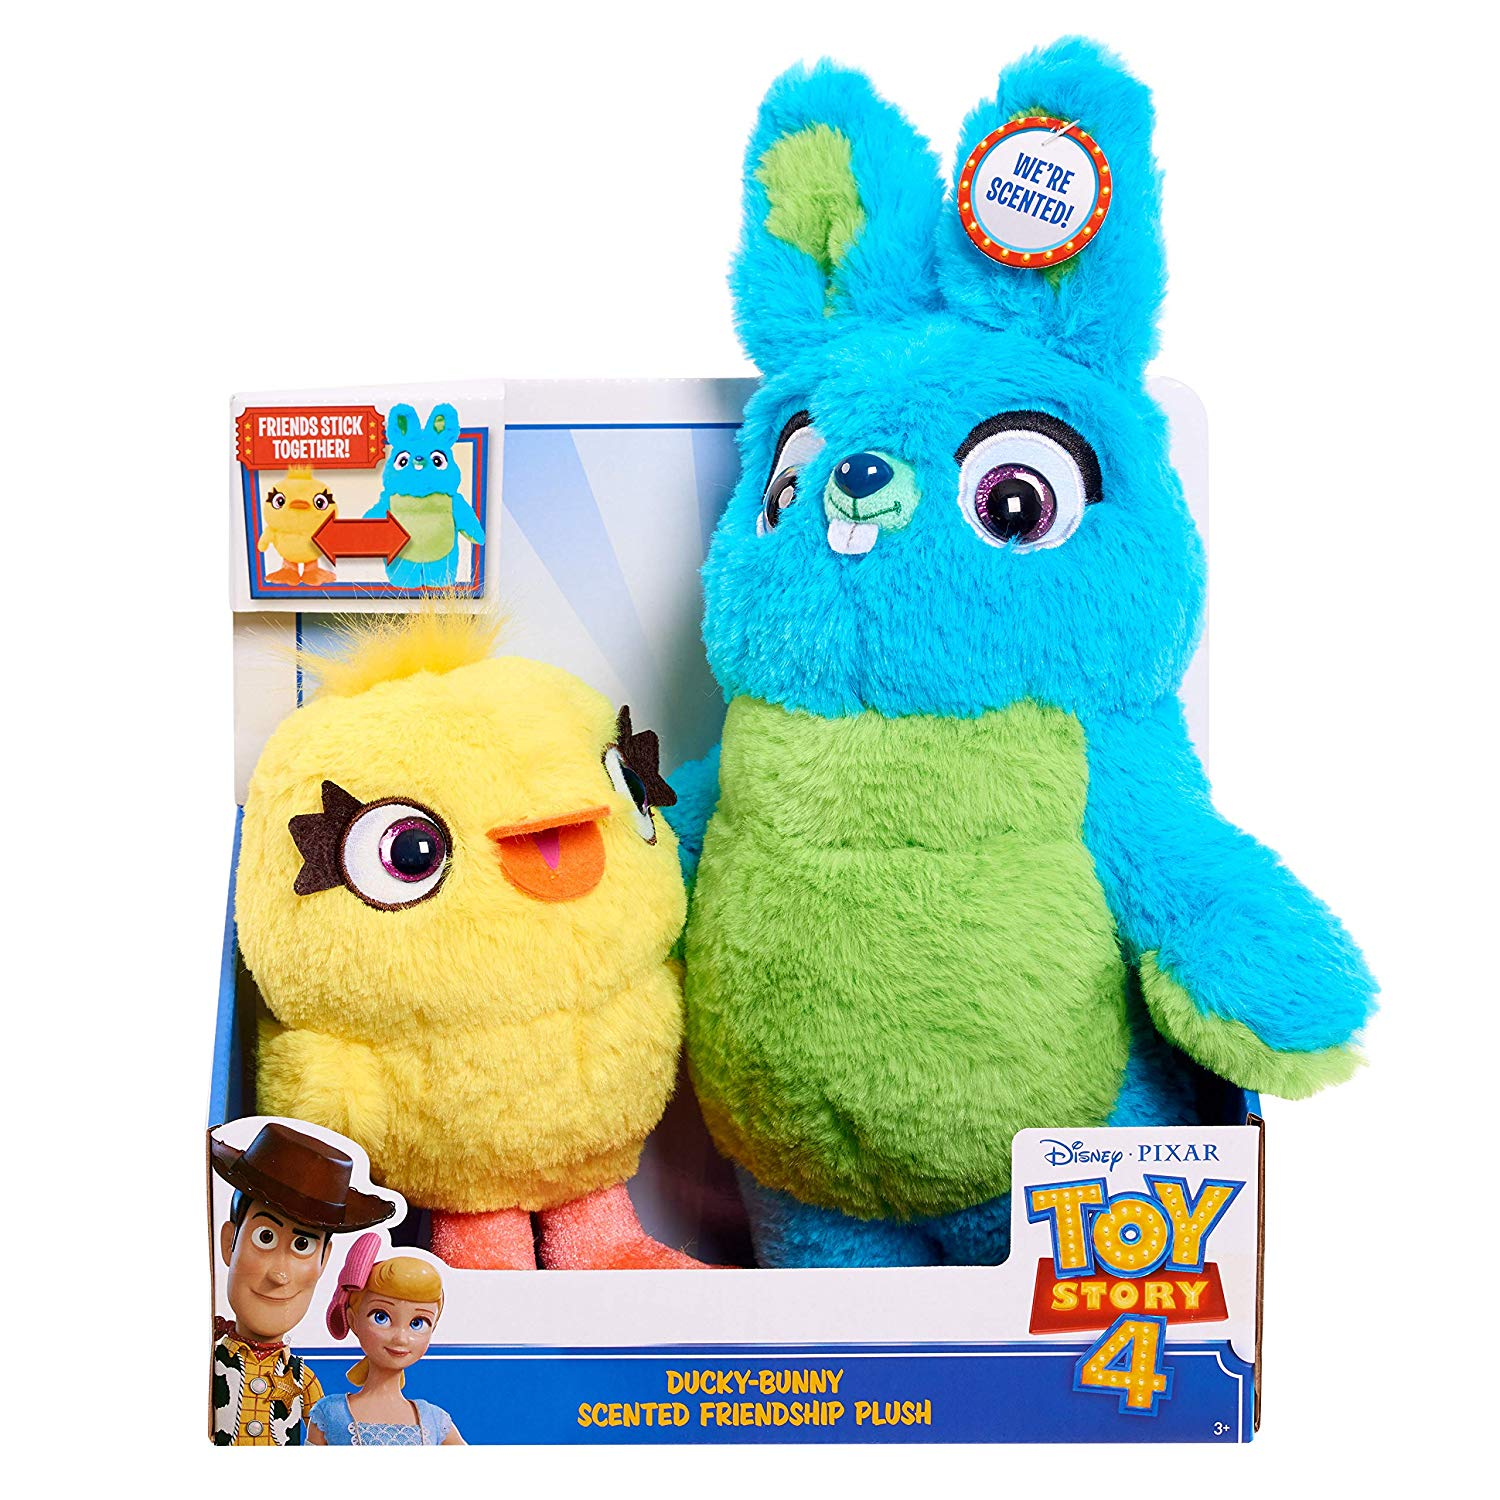 toy story 4 bunny and ducky toys